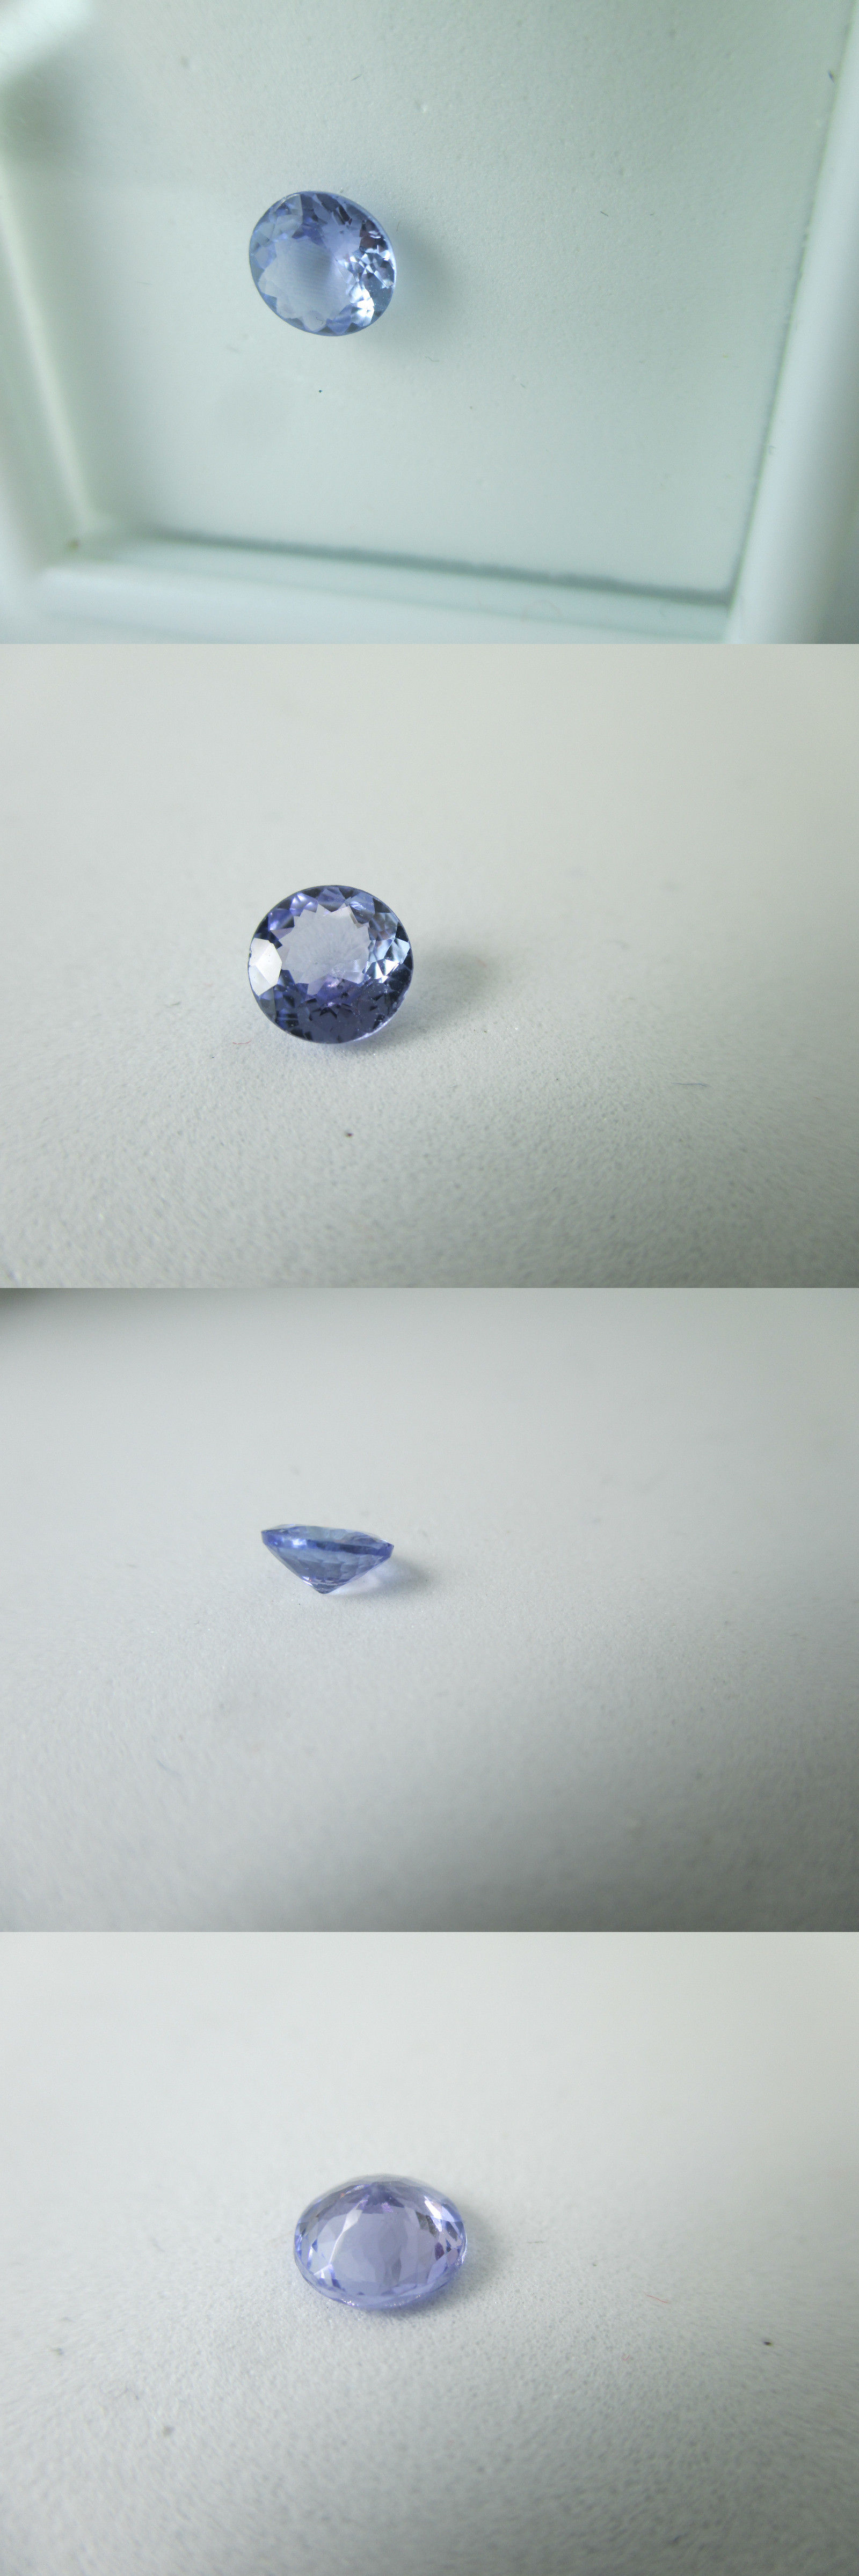 east product gemstone stones tanzanite gn top the shaped cushion uk middle us category delivery to colour loose jewellery